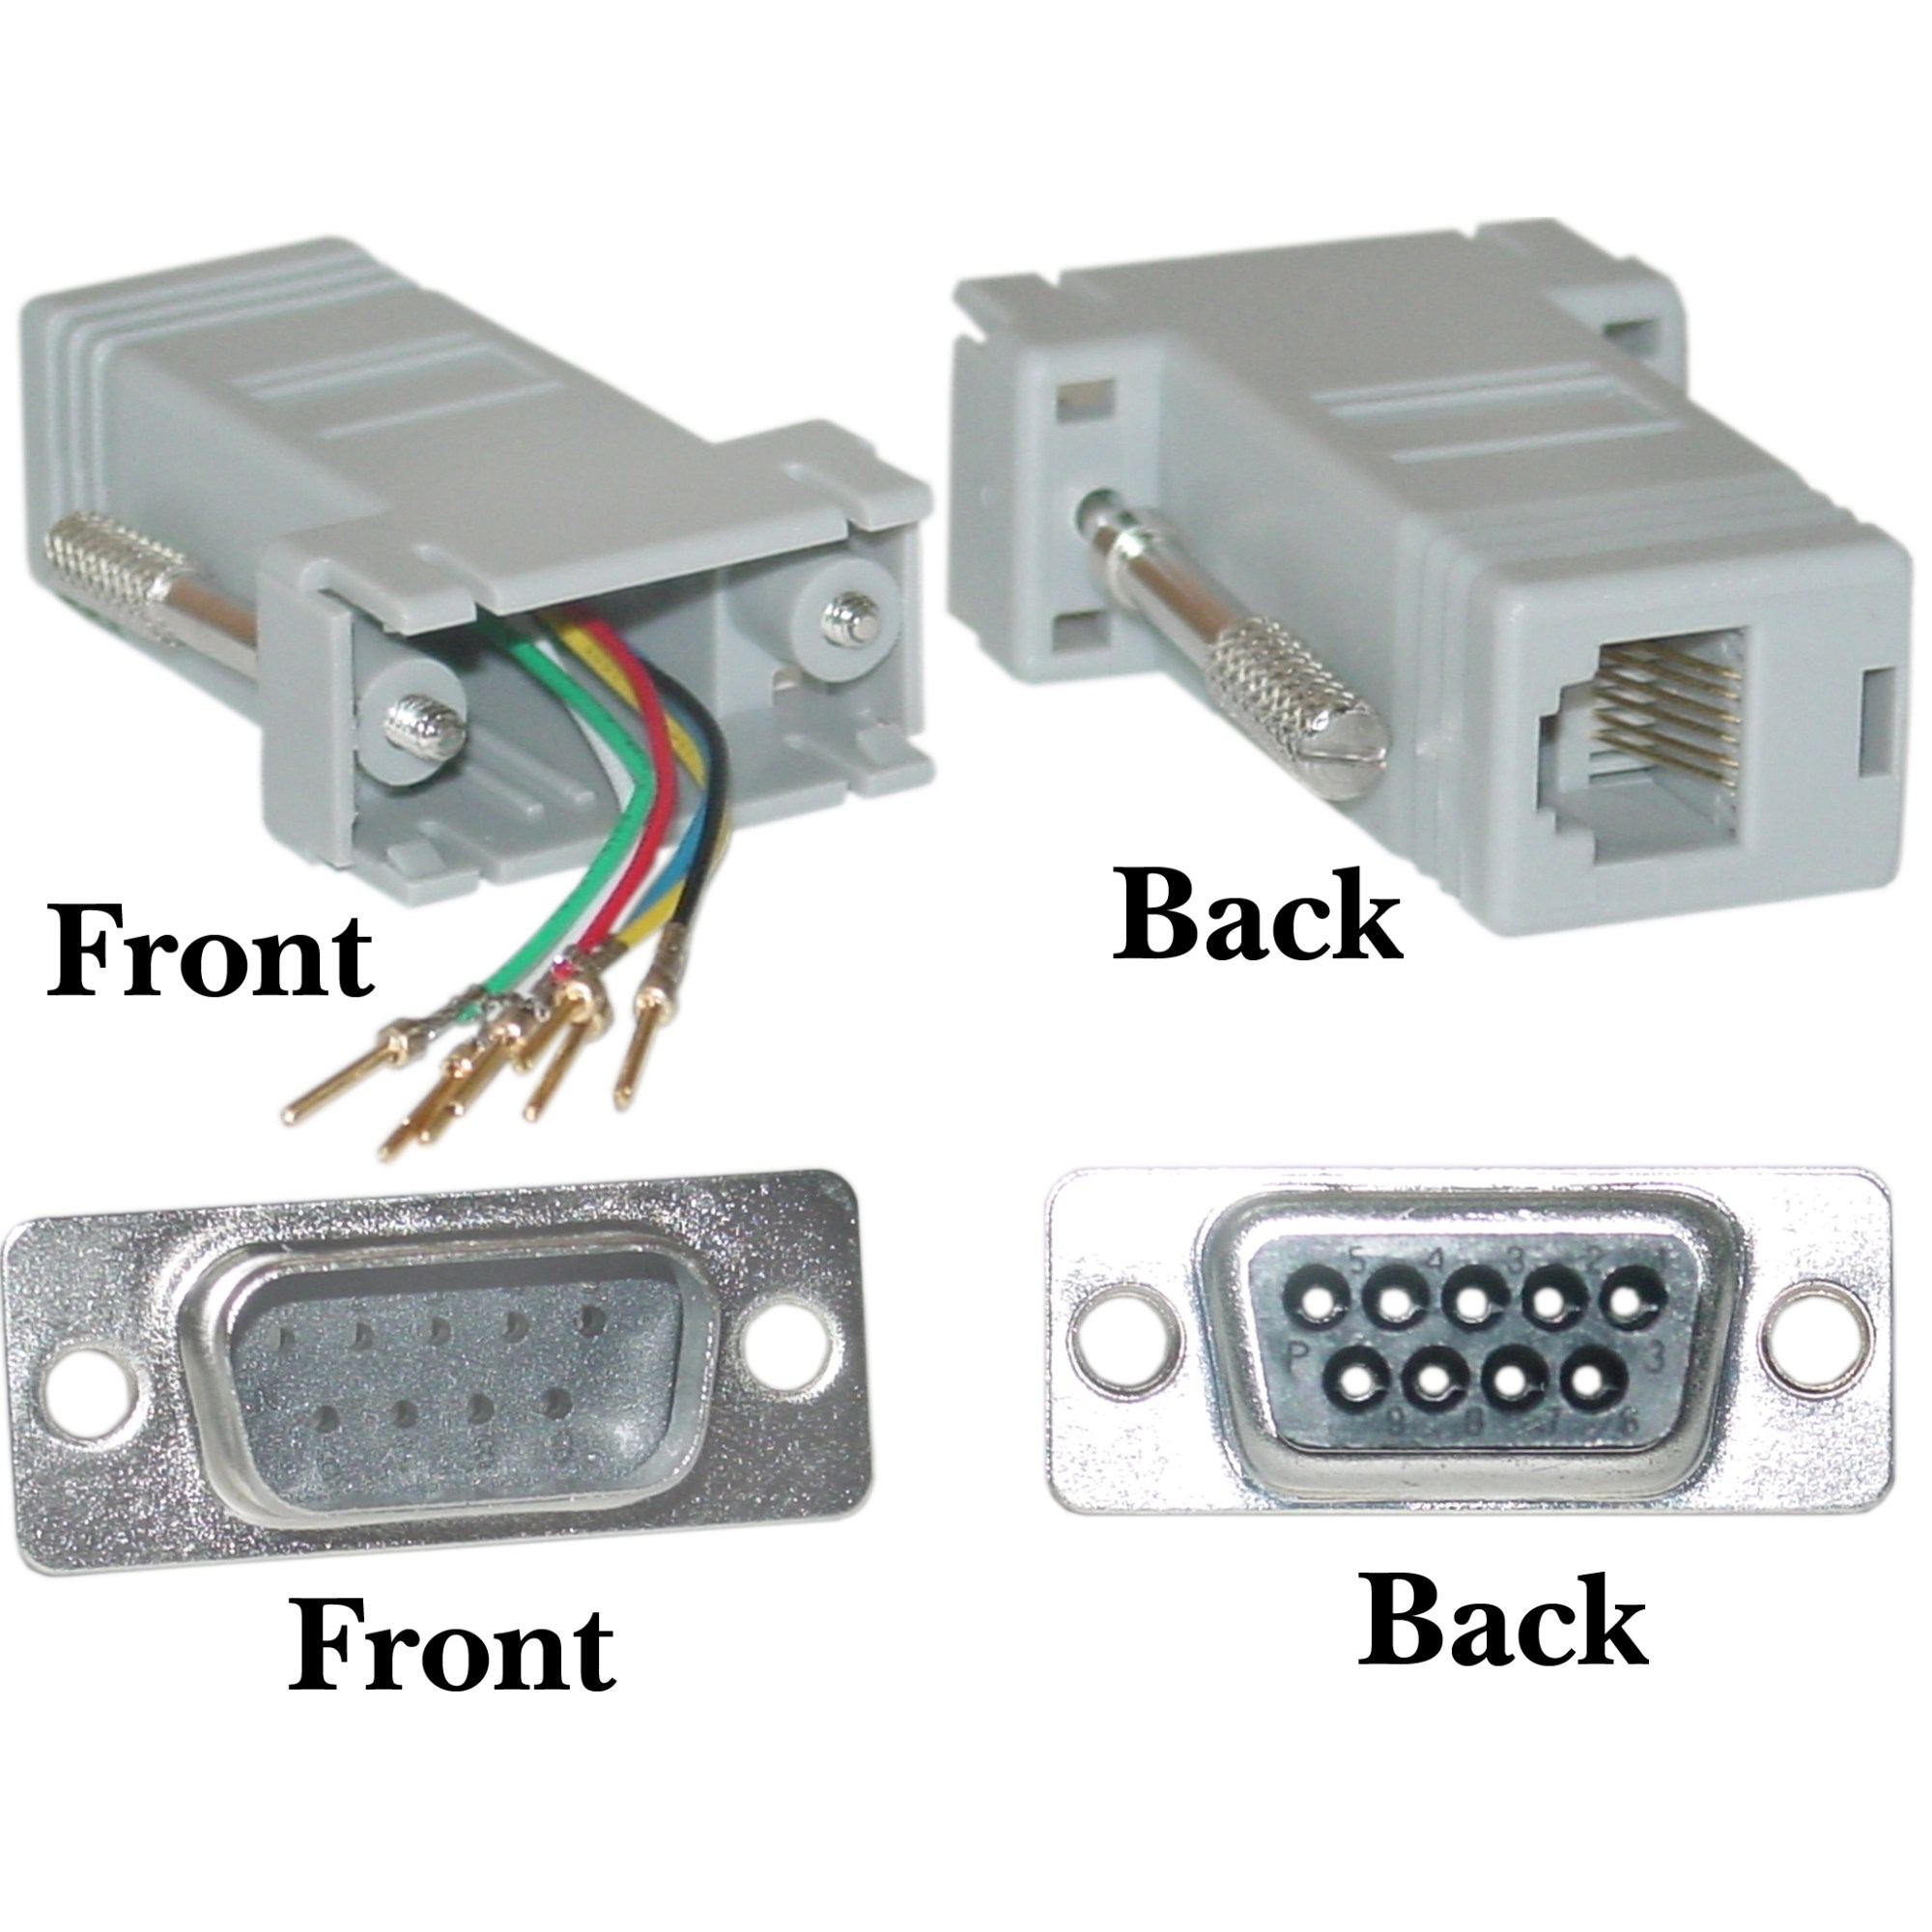 hight resolution of rj12 jack wiring wiring diagrammodular adapter db9 male to rj12 gray rj12 jack wiring